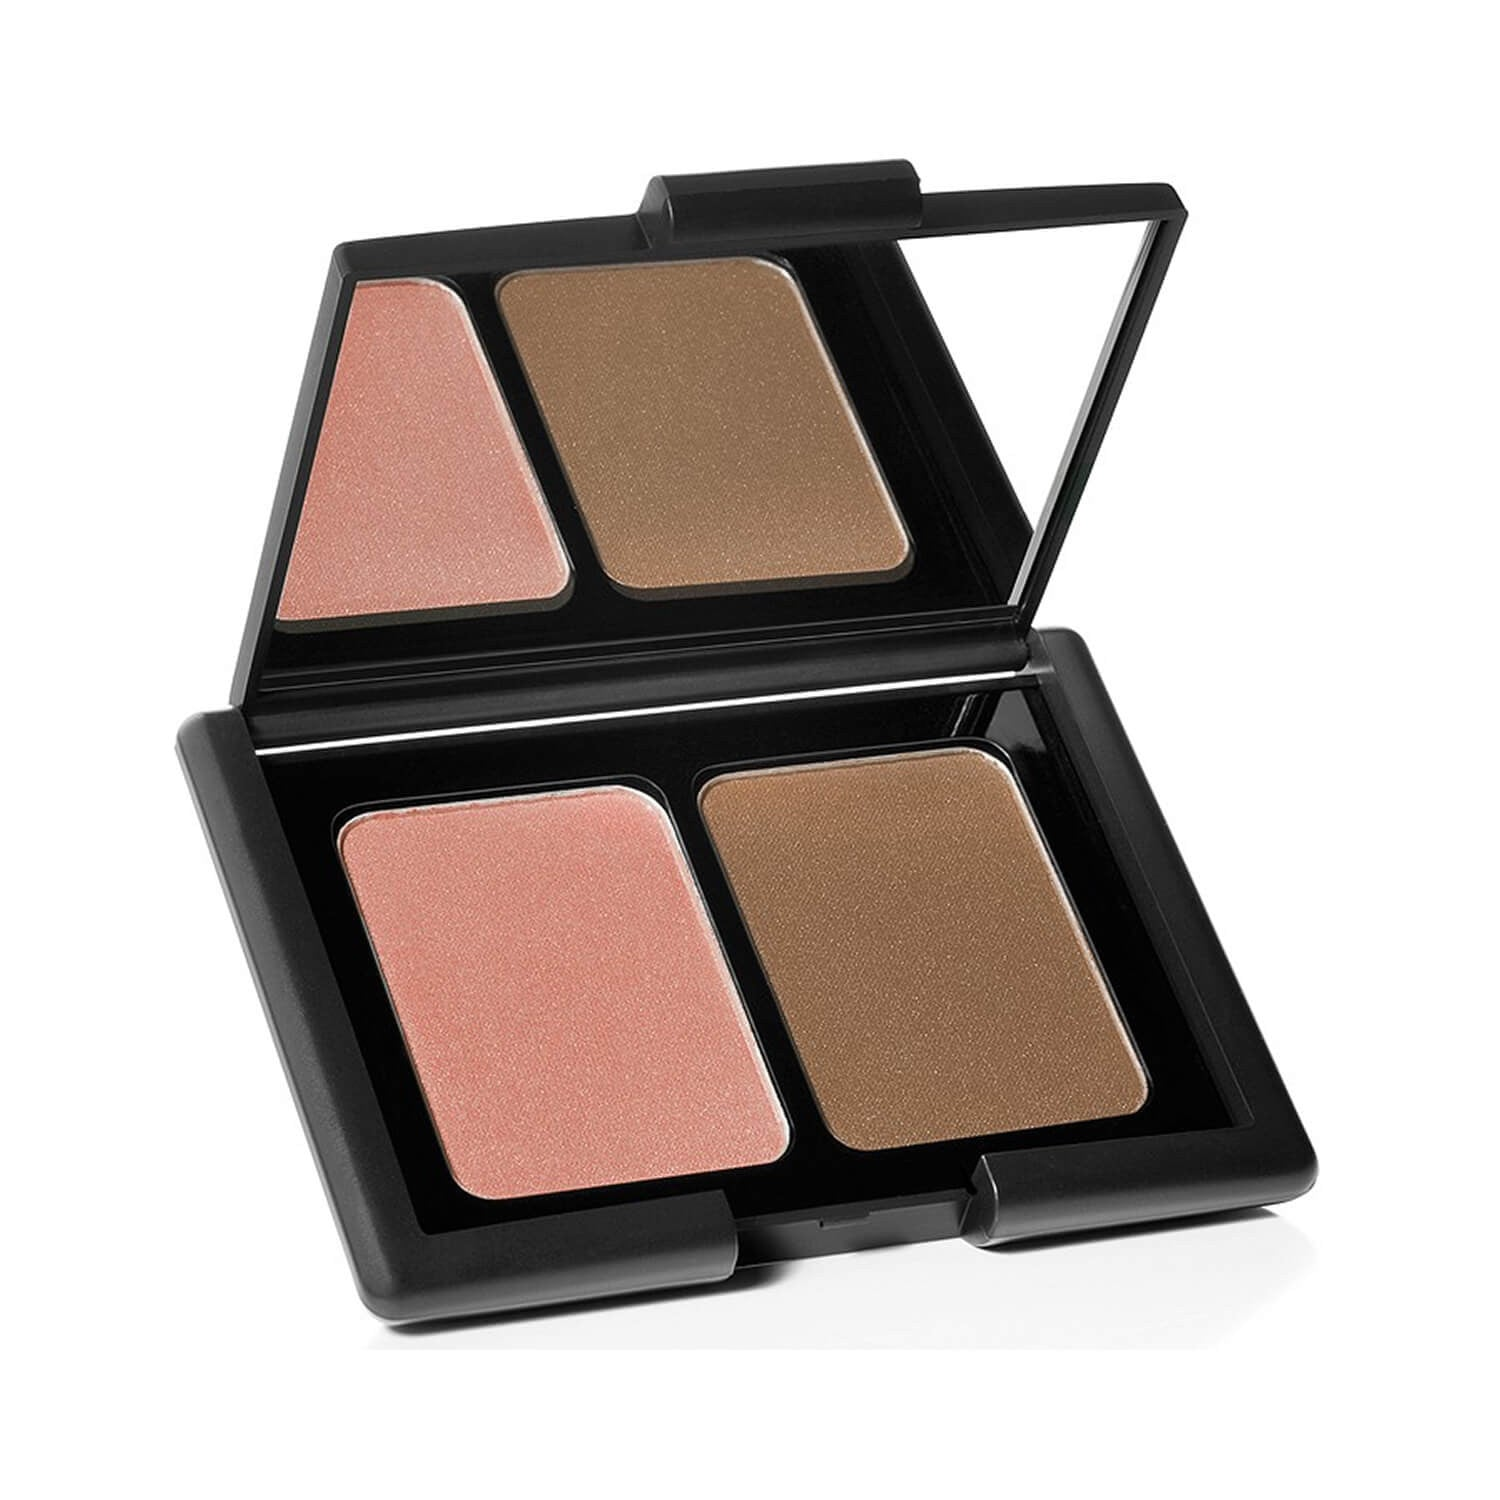 E.L.F - Contouring Blush & Bronzing Powder - Powder Or Cream